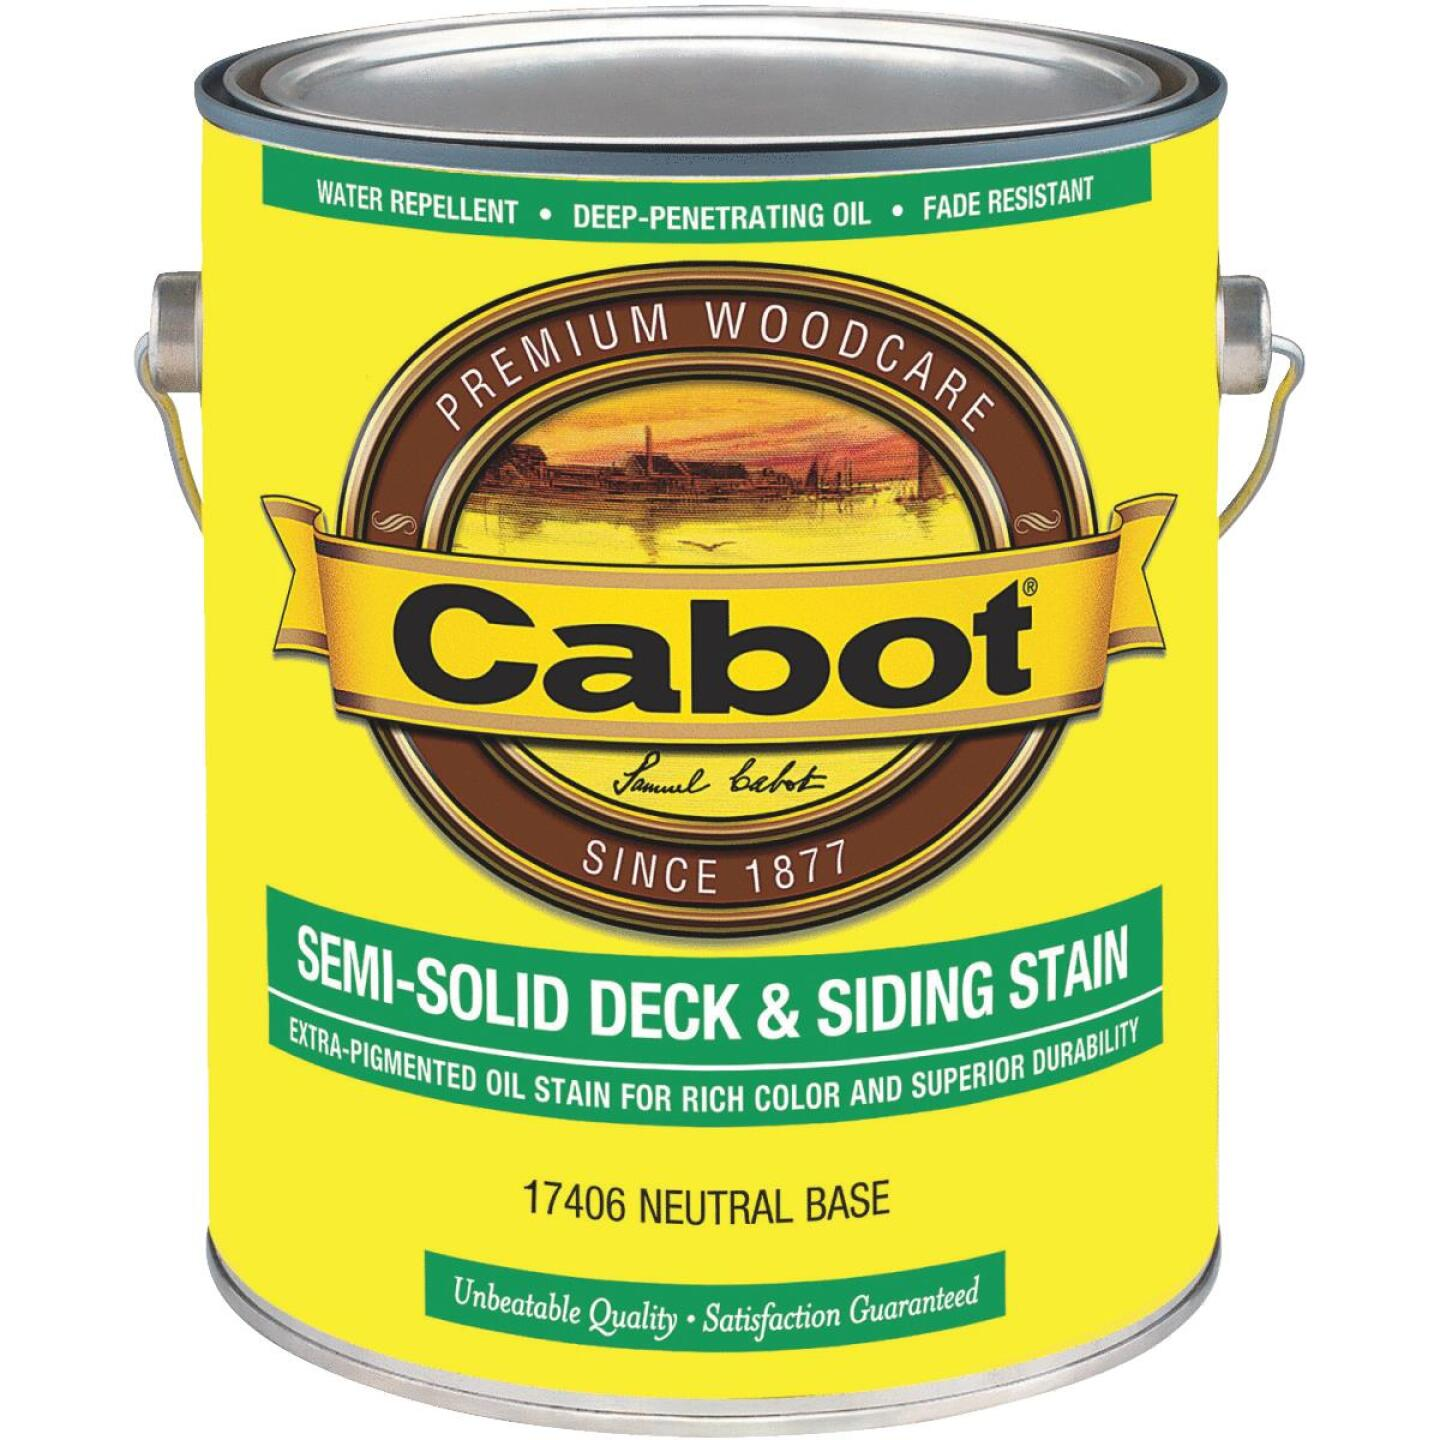 Cabot VOC Semi-Solid Deck & Siding Stain, Neutral Base, 1 Gal. Image 1